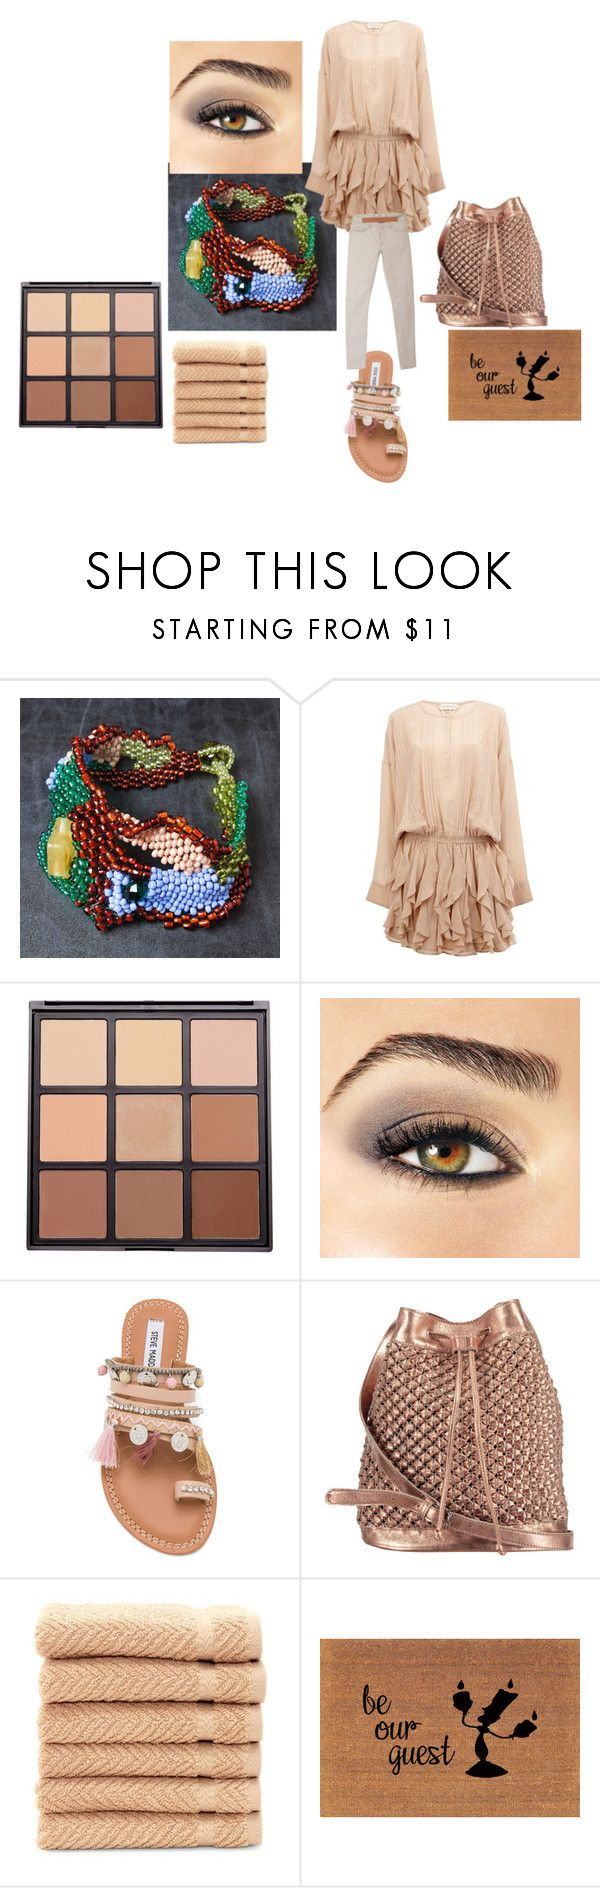 """""""Salt and sand"""" by mariellascode ❤ liked on Polyvore featuring Faith Connexion, Morphe, Avon, Steve Madden, nooki design, Linum Home Textiles and Acne Studios"""